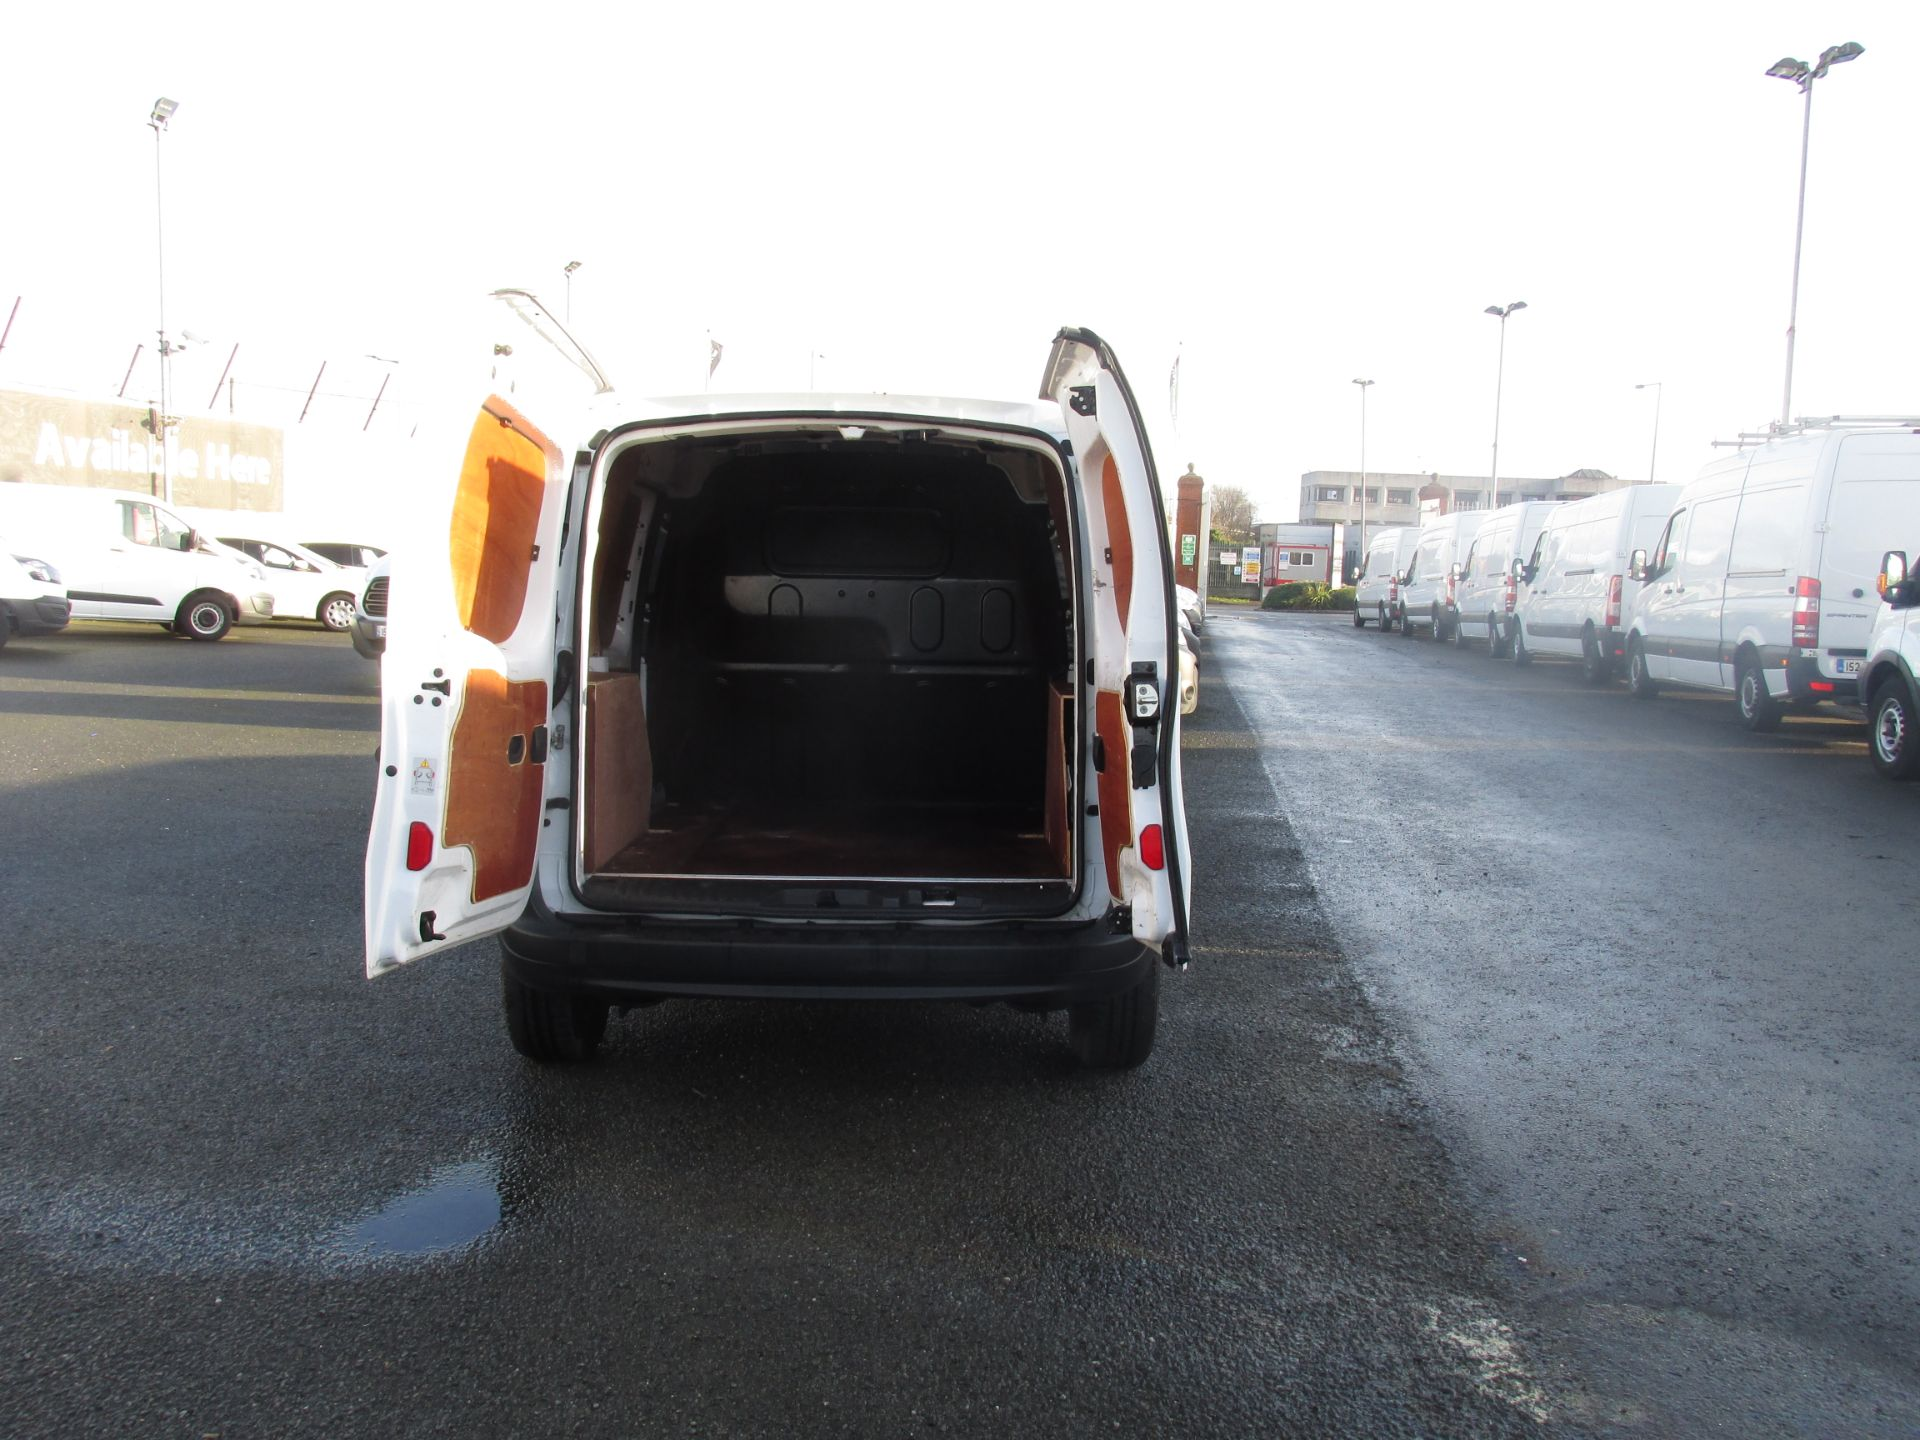 2016 Renault Kangoo 1.5 DCI 75 Business 2DR  - LOW MILES - ONE OWNER -  FSH - (162D10269) Image 11